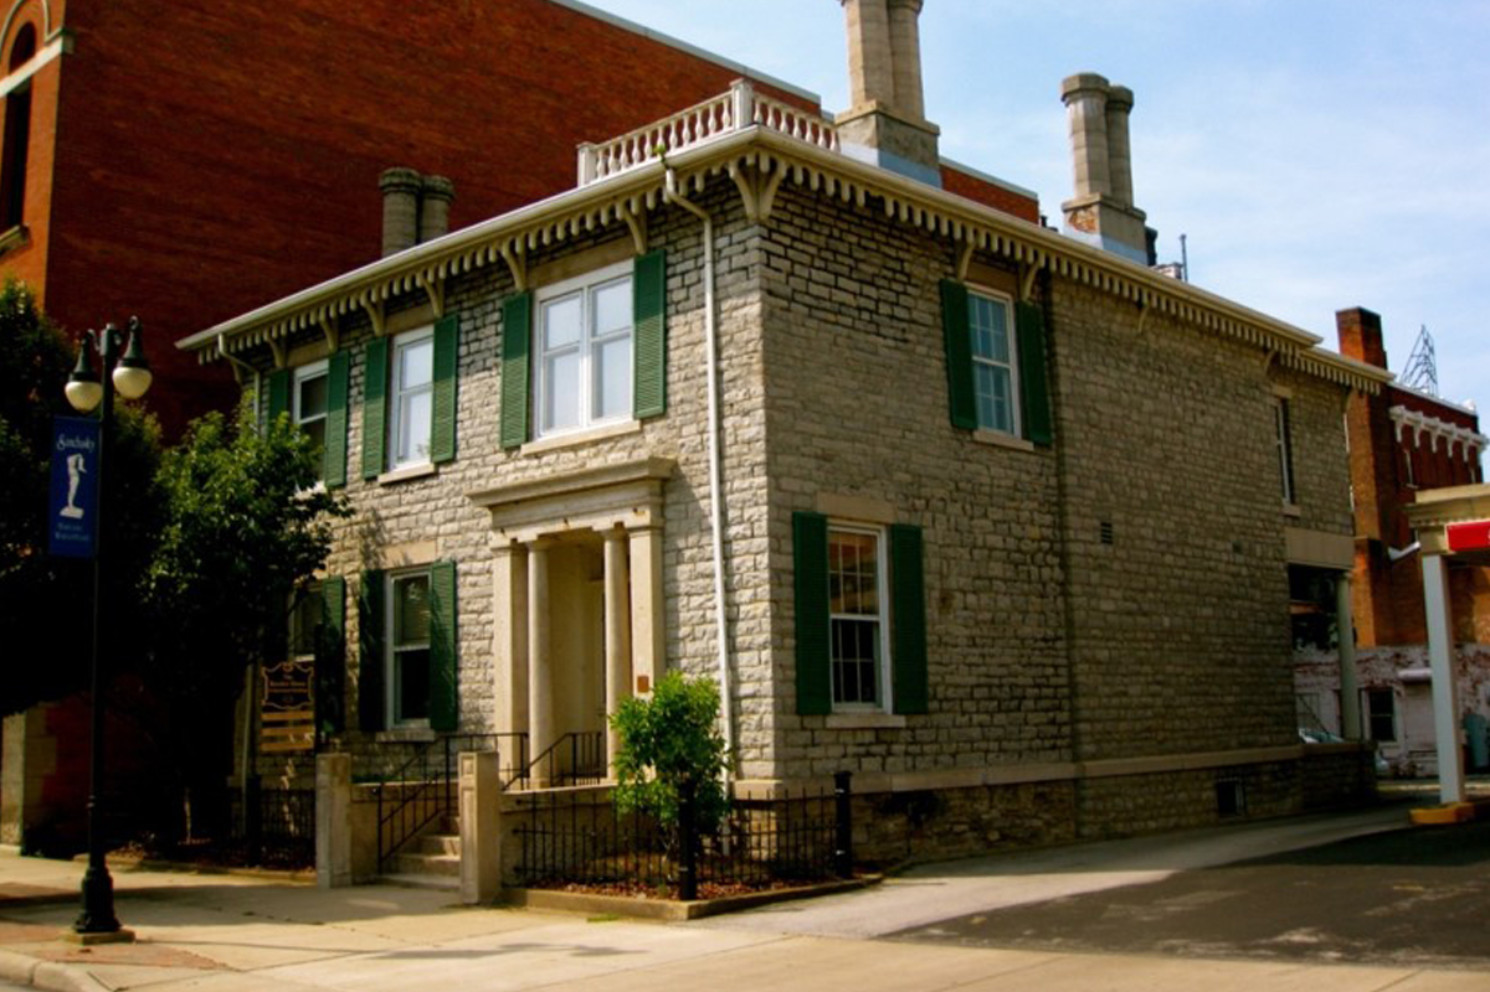 Beecher House - Erie County Ohio Historical Society